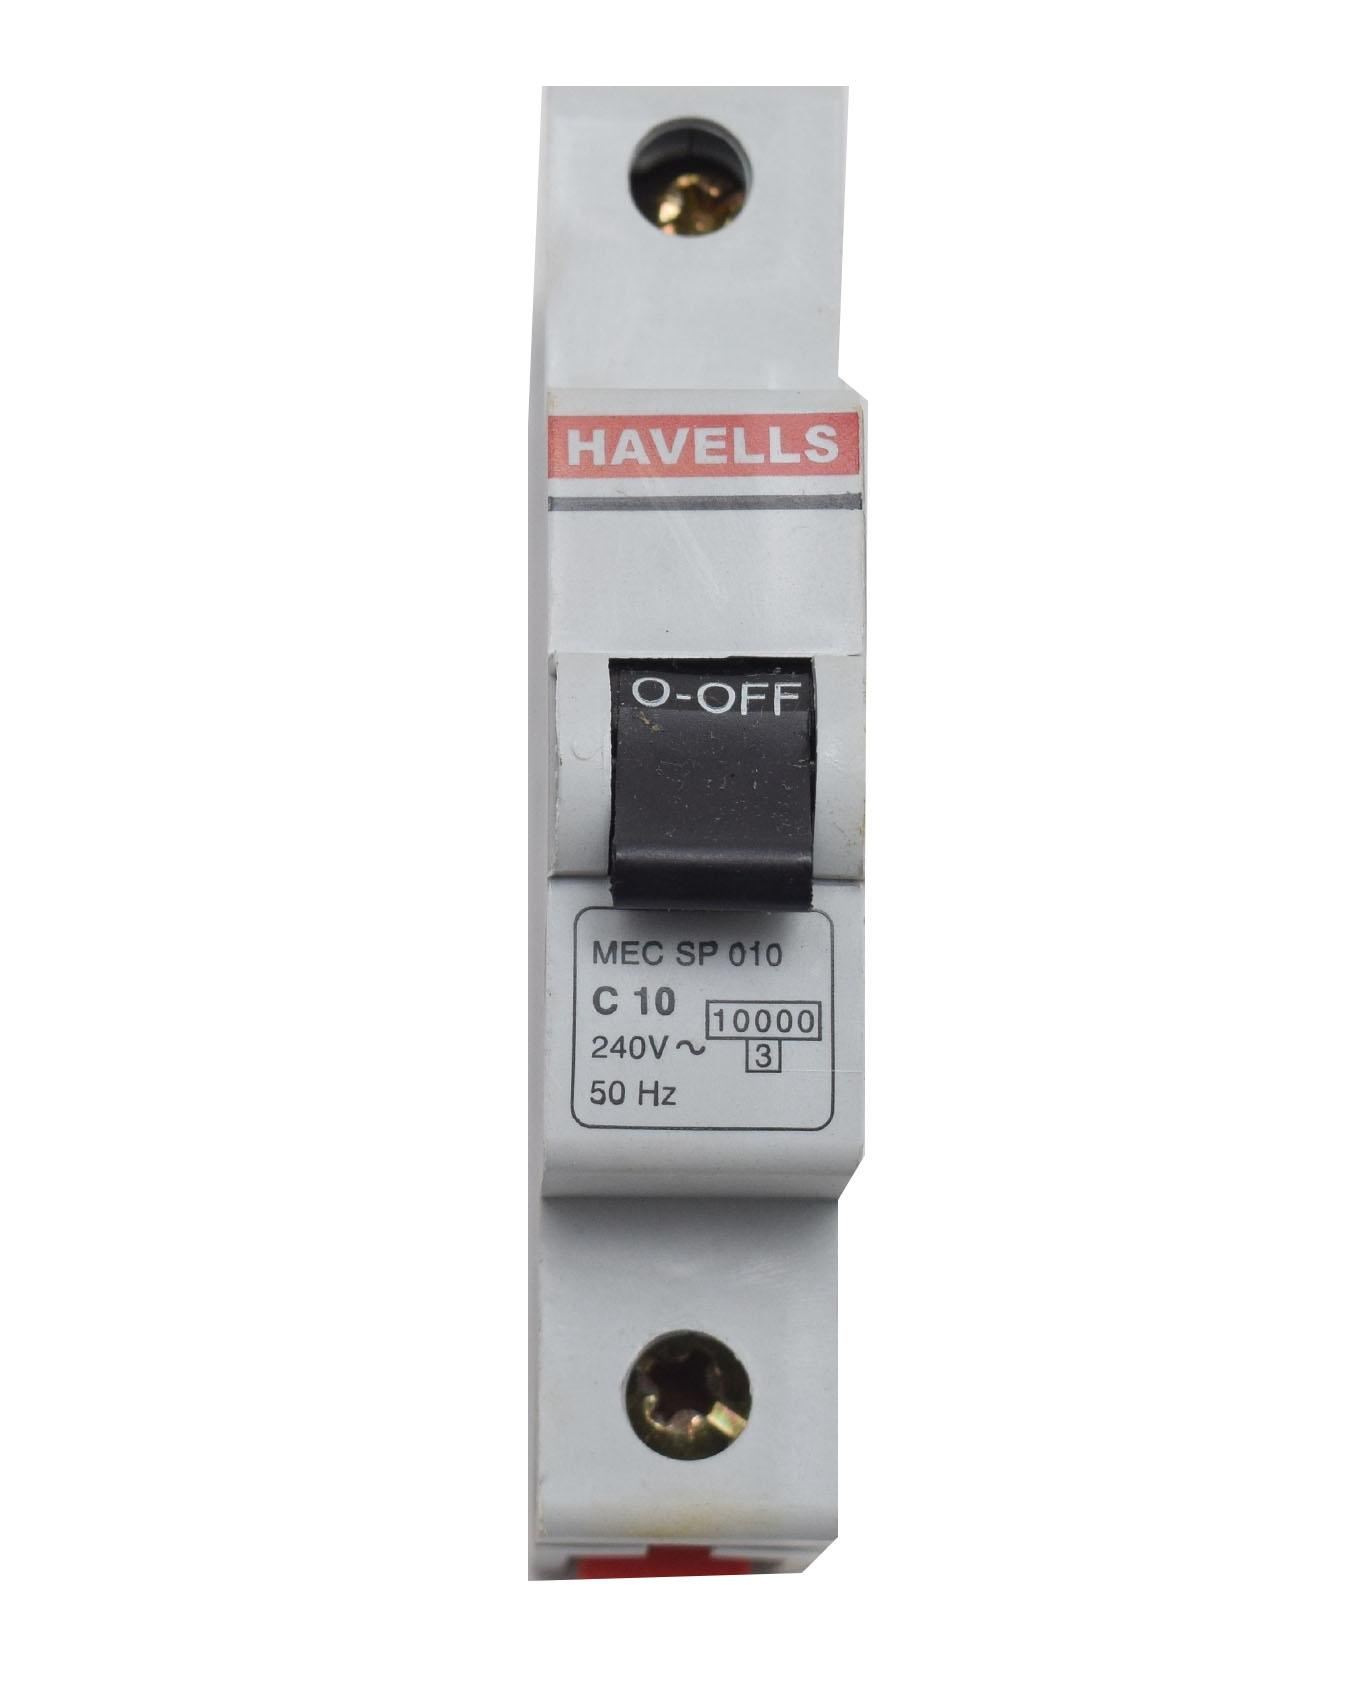 Buy Havellsfem Home Power Tool Accessory At Best Prices Online In This Is A Great Circuit Creator Miniature Breaker Multi Color